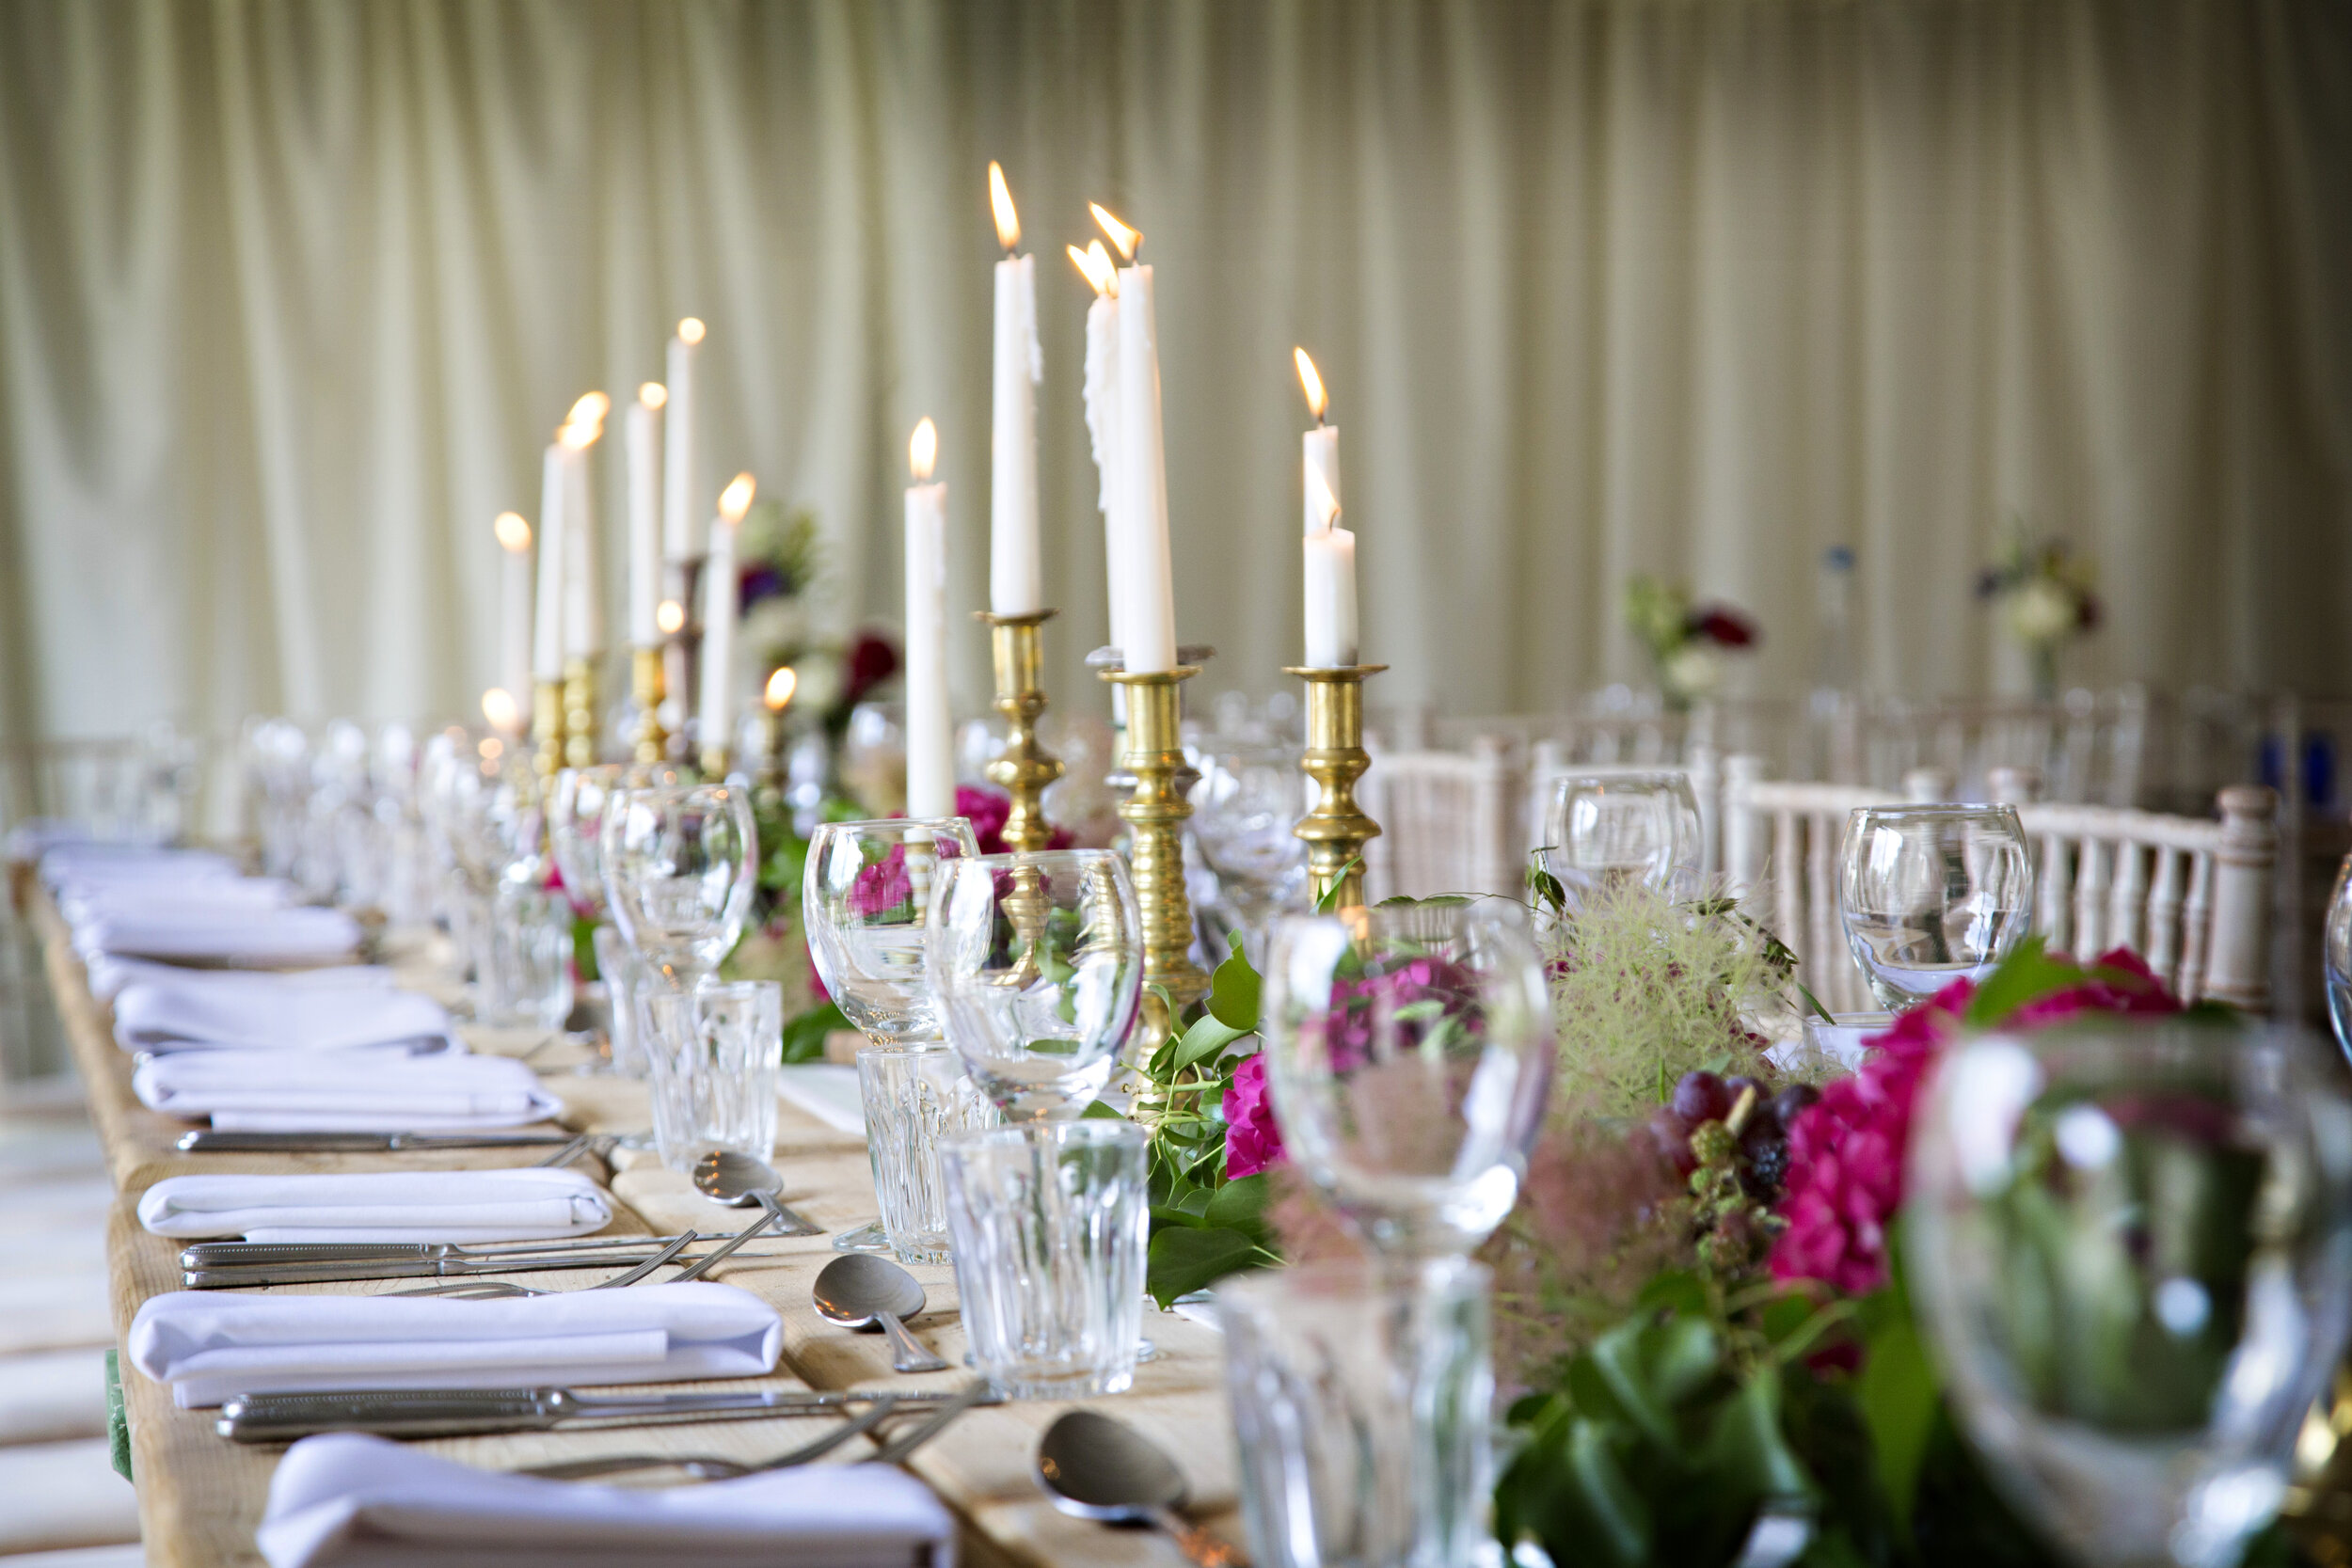 The wedding breakfast - Choose a three course meal from our Bronze, Silver or Gold Menu in our fully heated greenhouse marquee